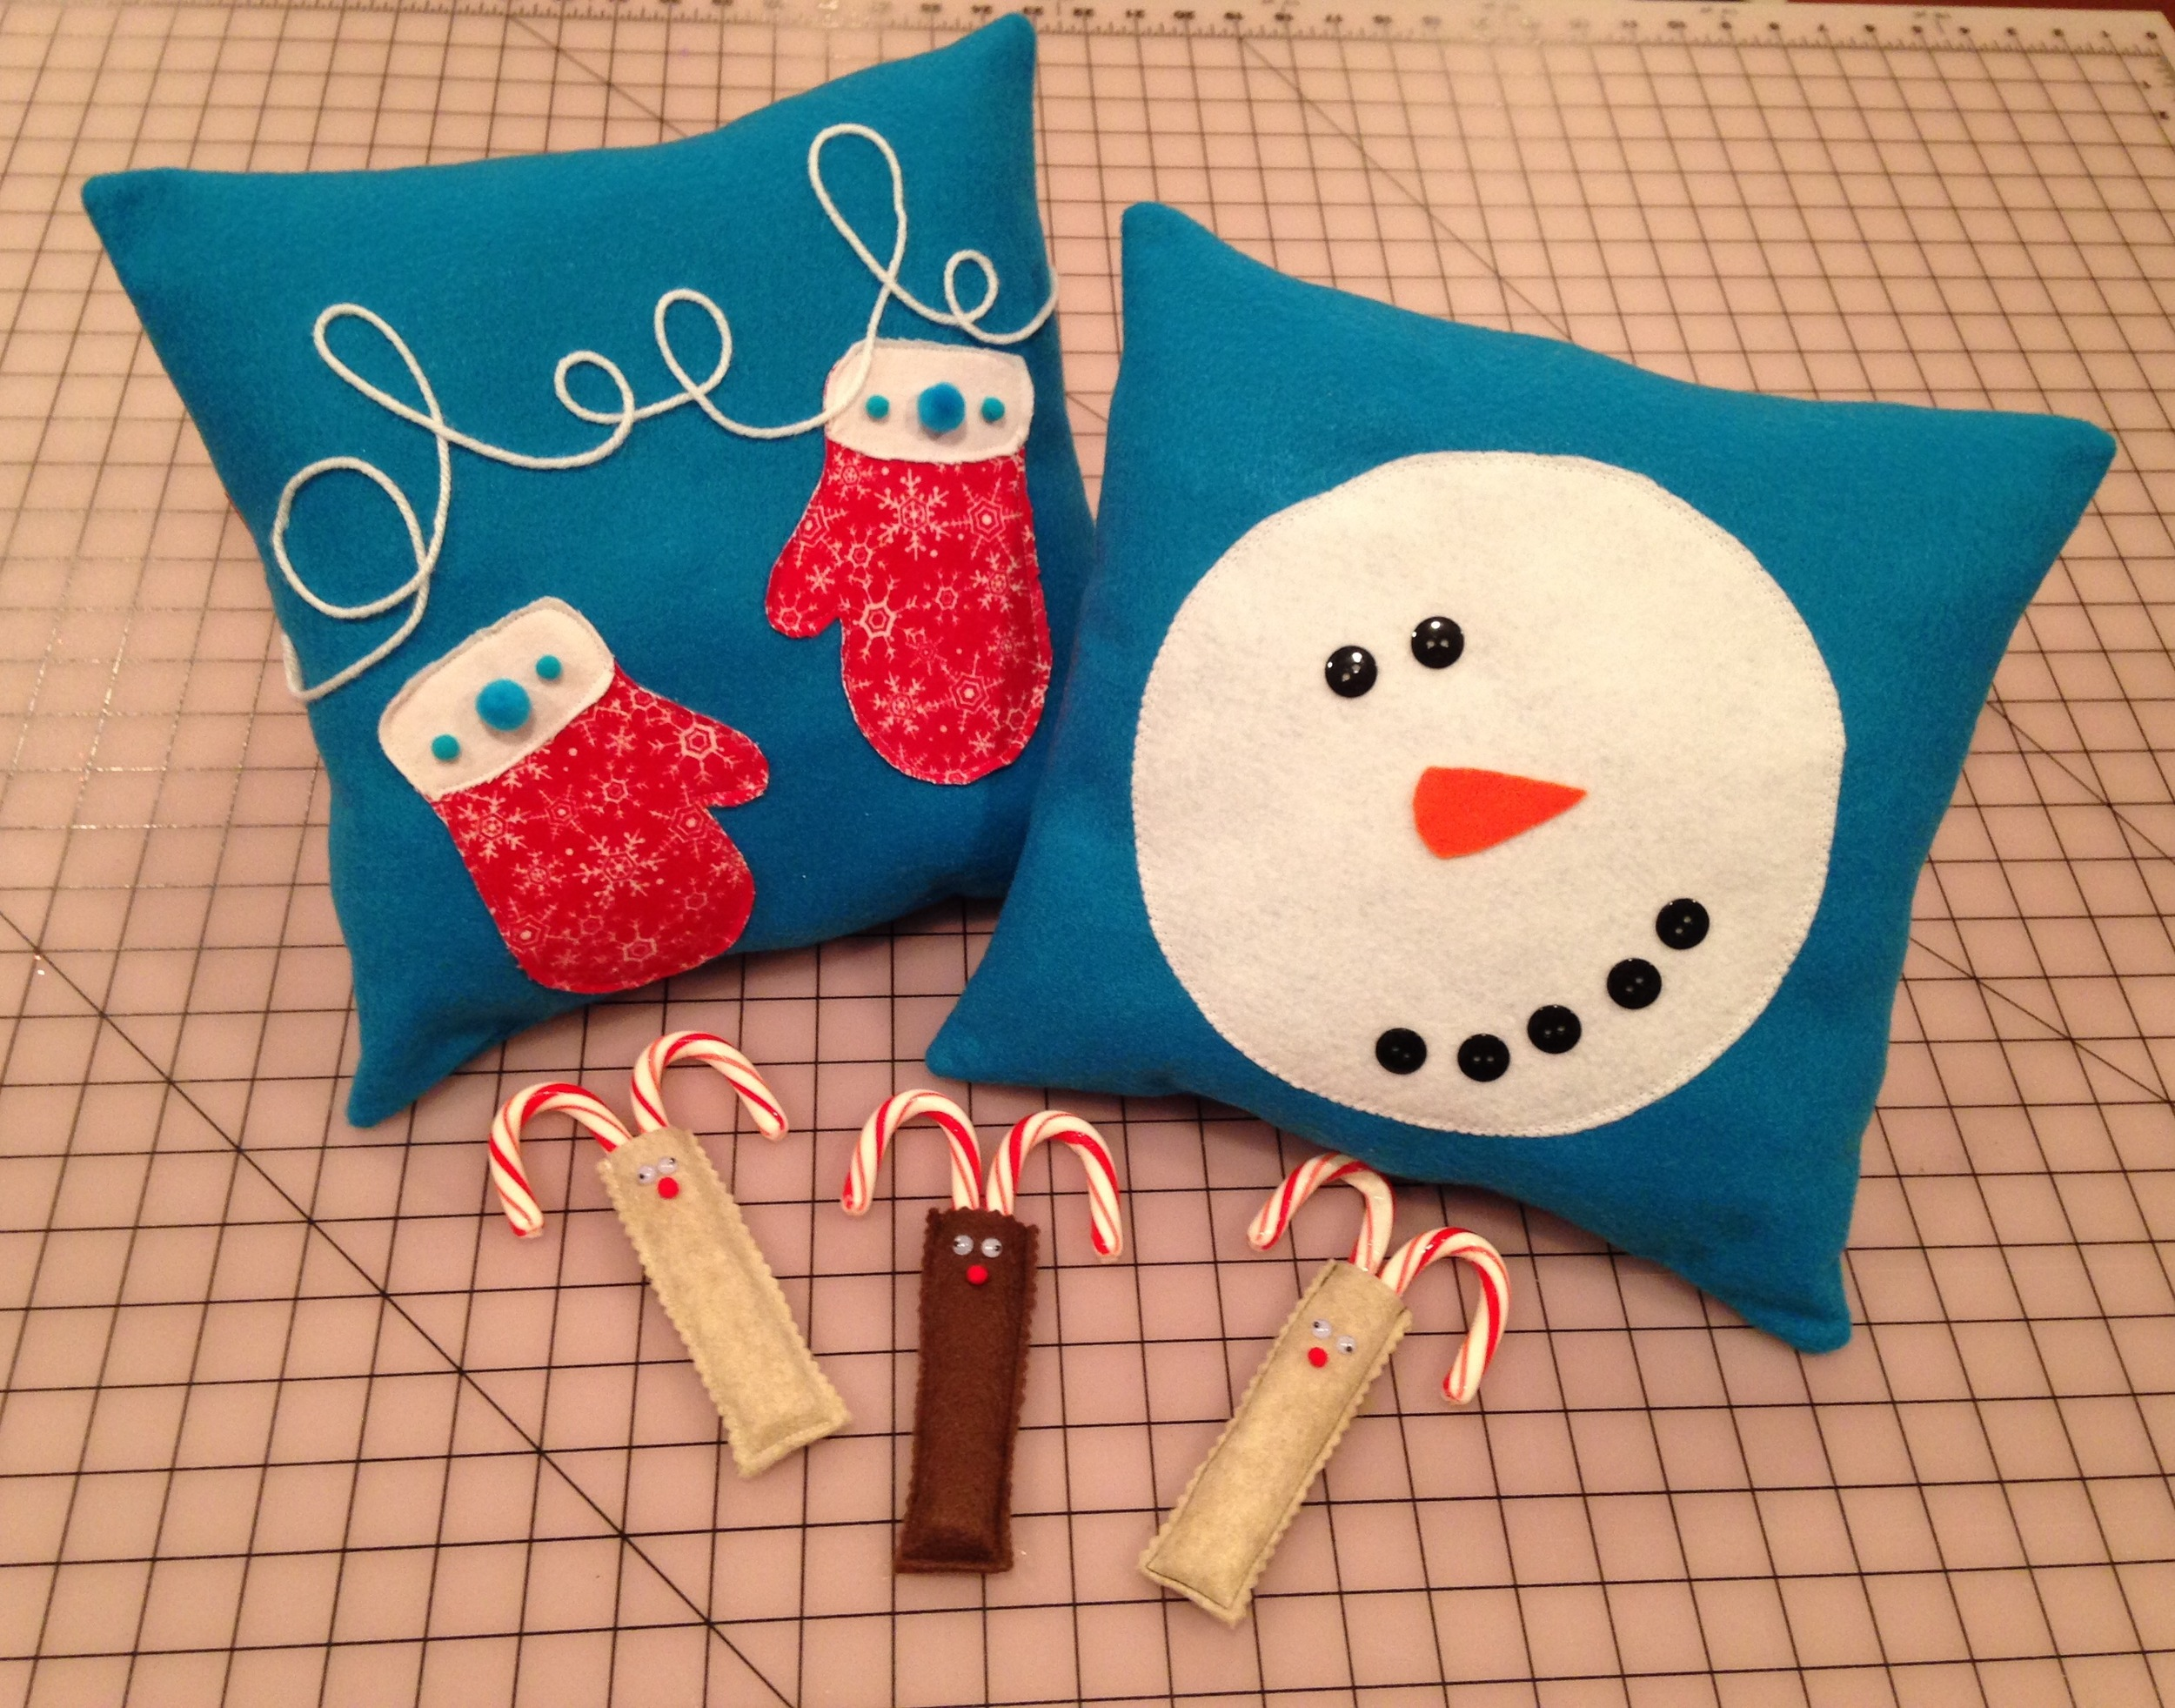 Snowmen, mittens, reindeer and candy canes - Is there anything more Christmas-y than that!?